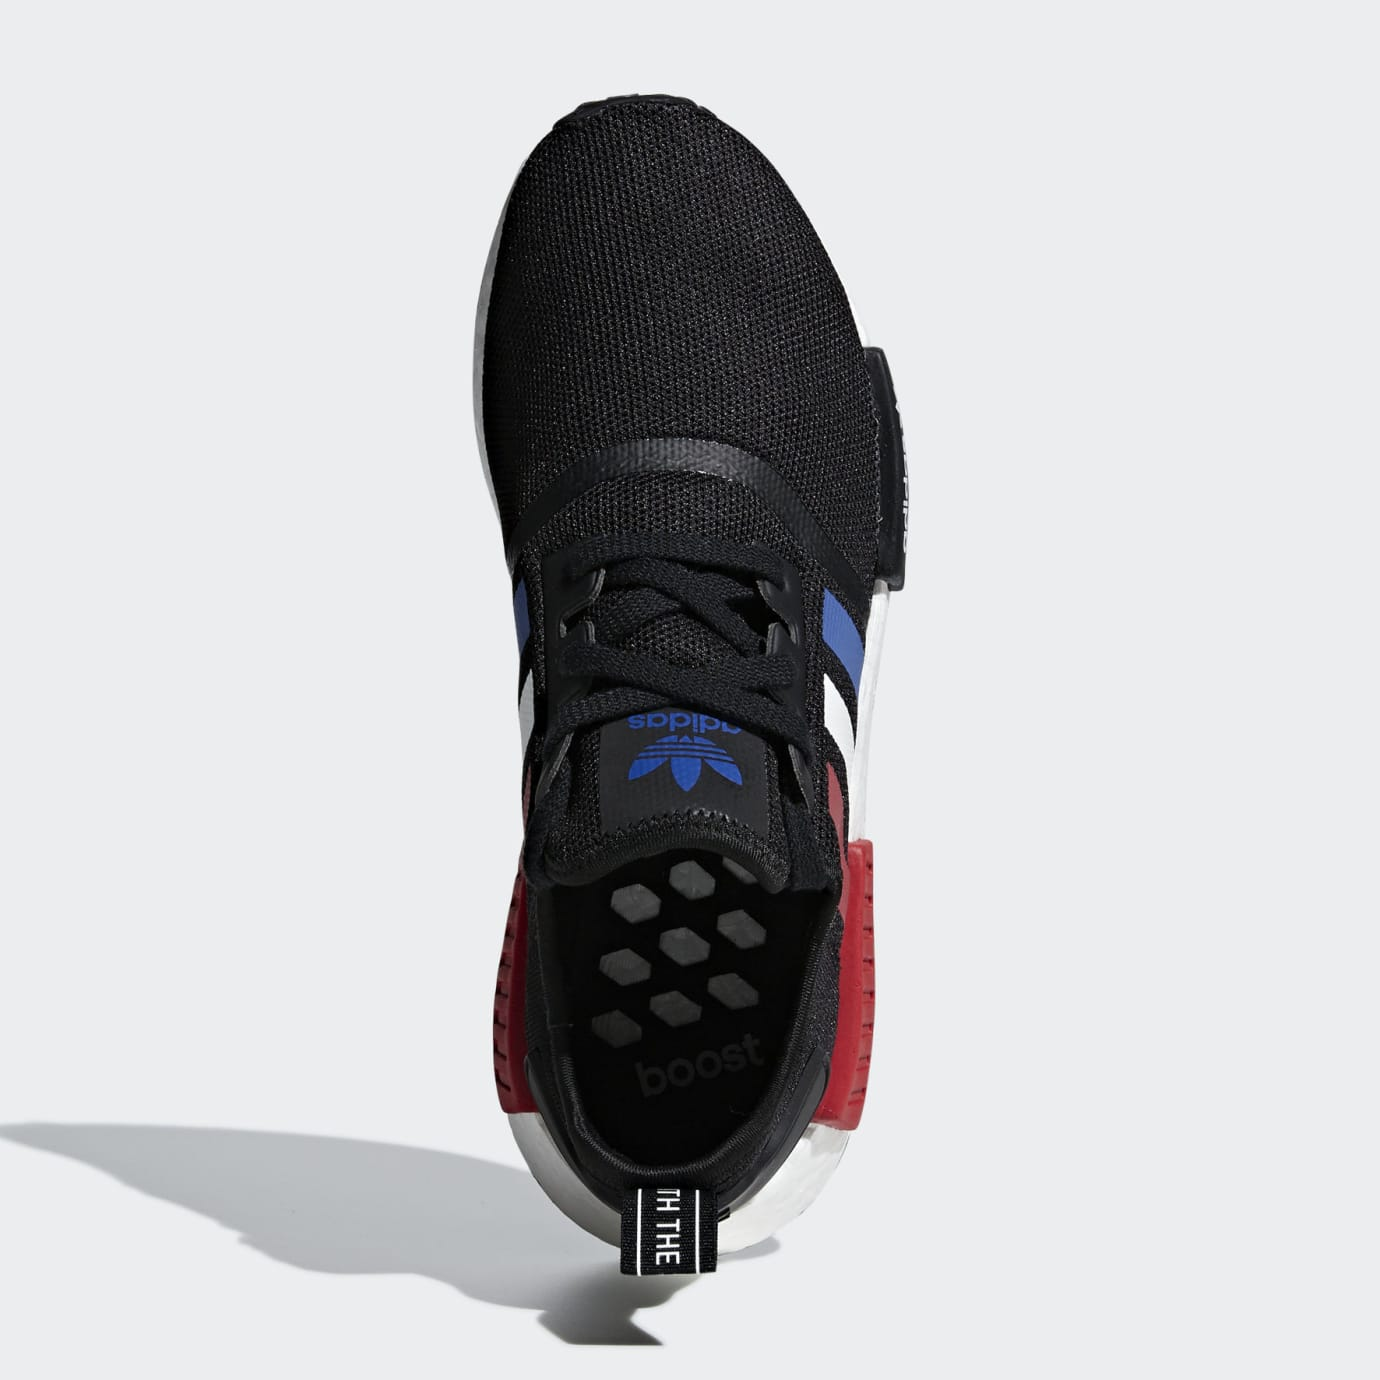 check out 02634 0ee14 Adidas NMD R1 Color Pack Tricolor Release Date F99712 | Sole ...